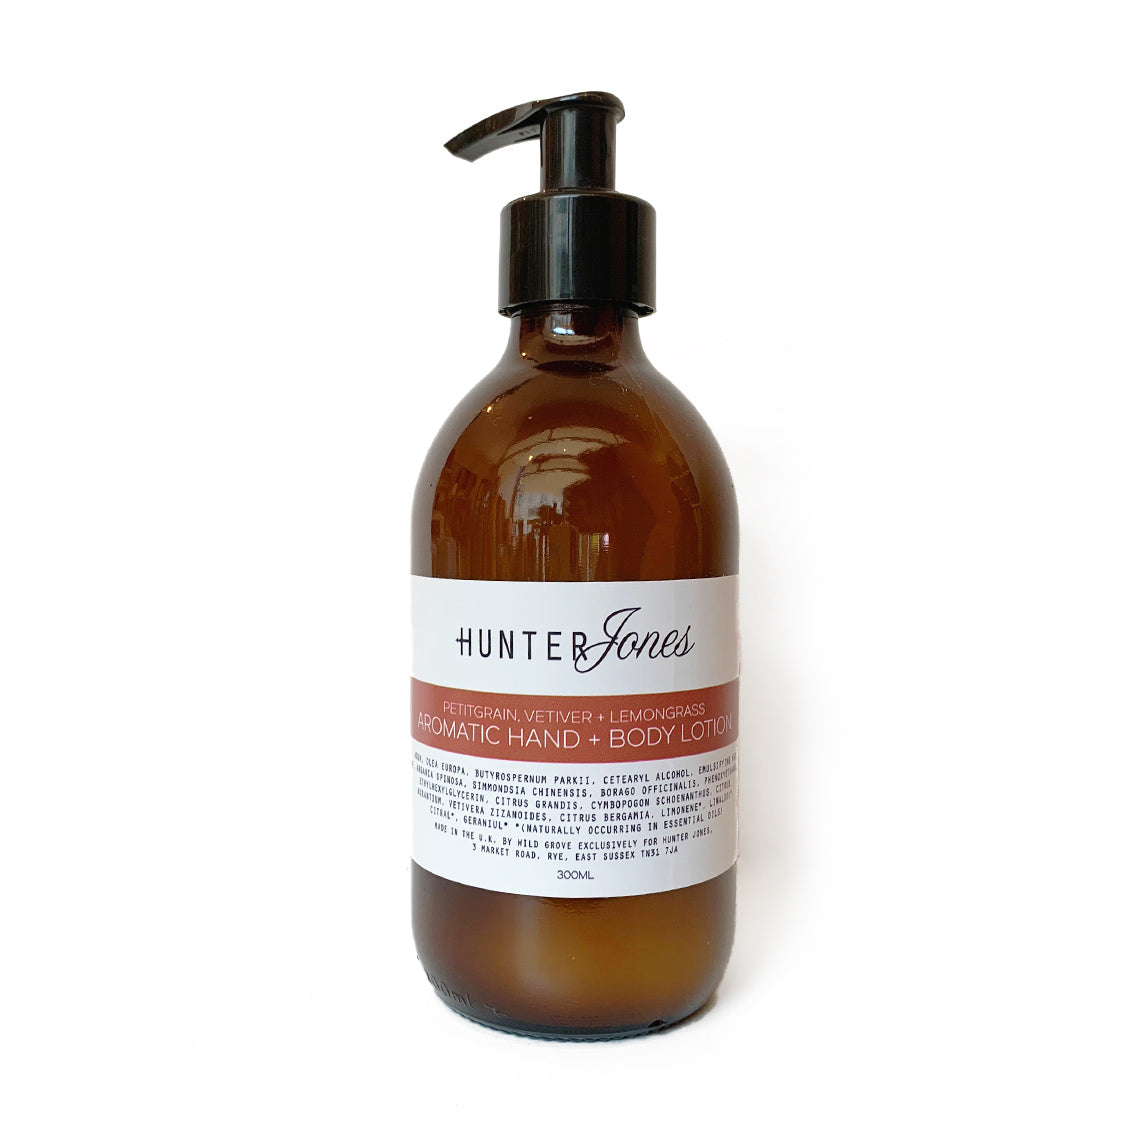 Petitgrain, Vetiver + Lemongrass Aromatic Hand and Body Lotion